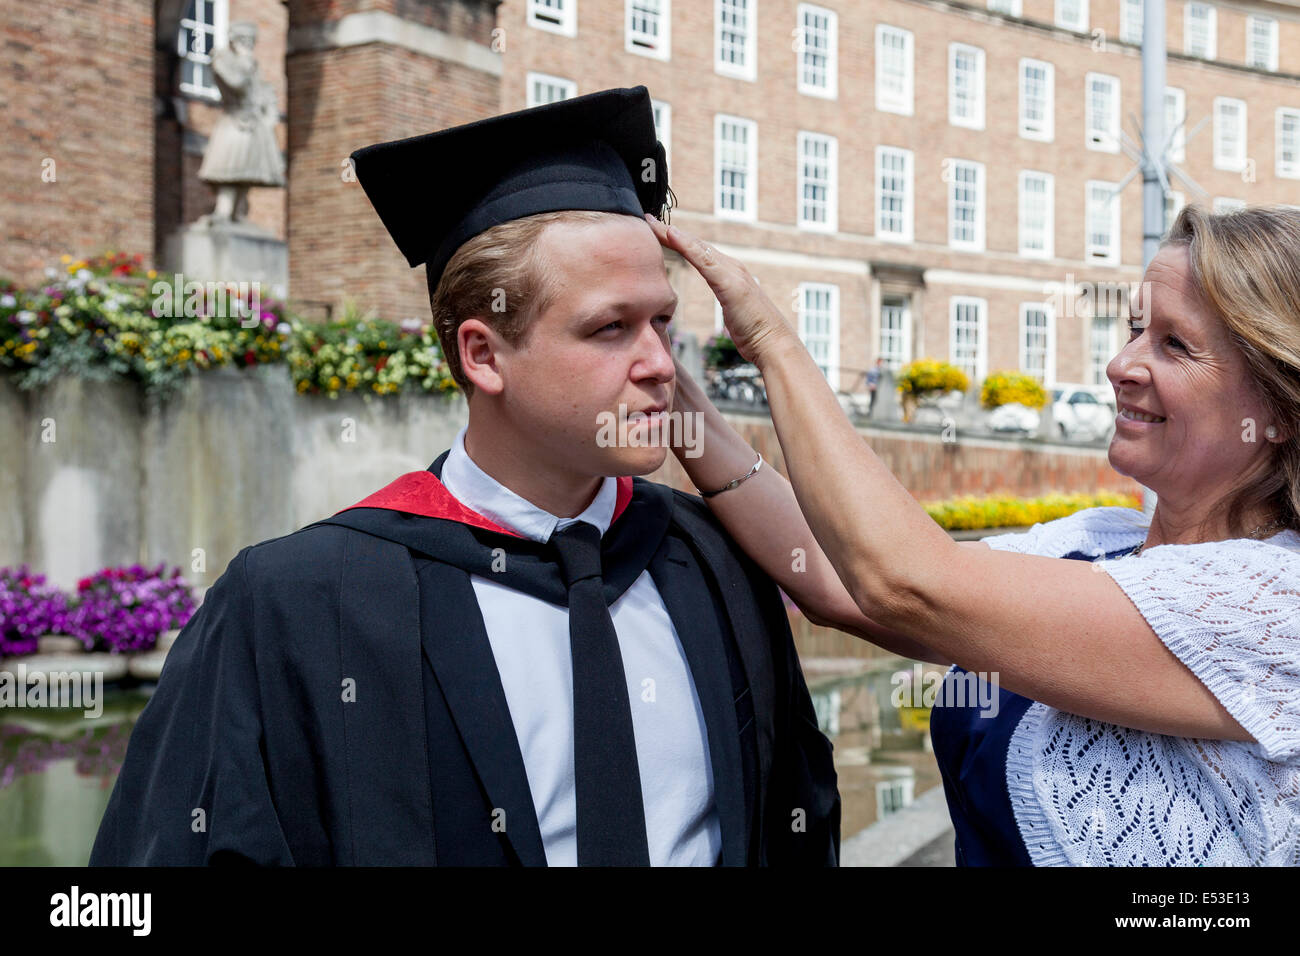 A Proud Mother and Her Graduate Son At The University of Western England (UWE) Degree Ceremony, Bristol, England - Stock Image